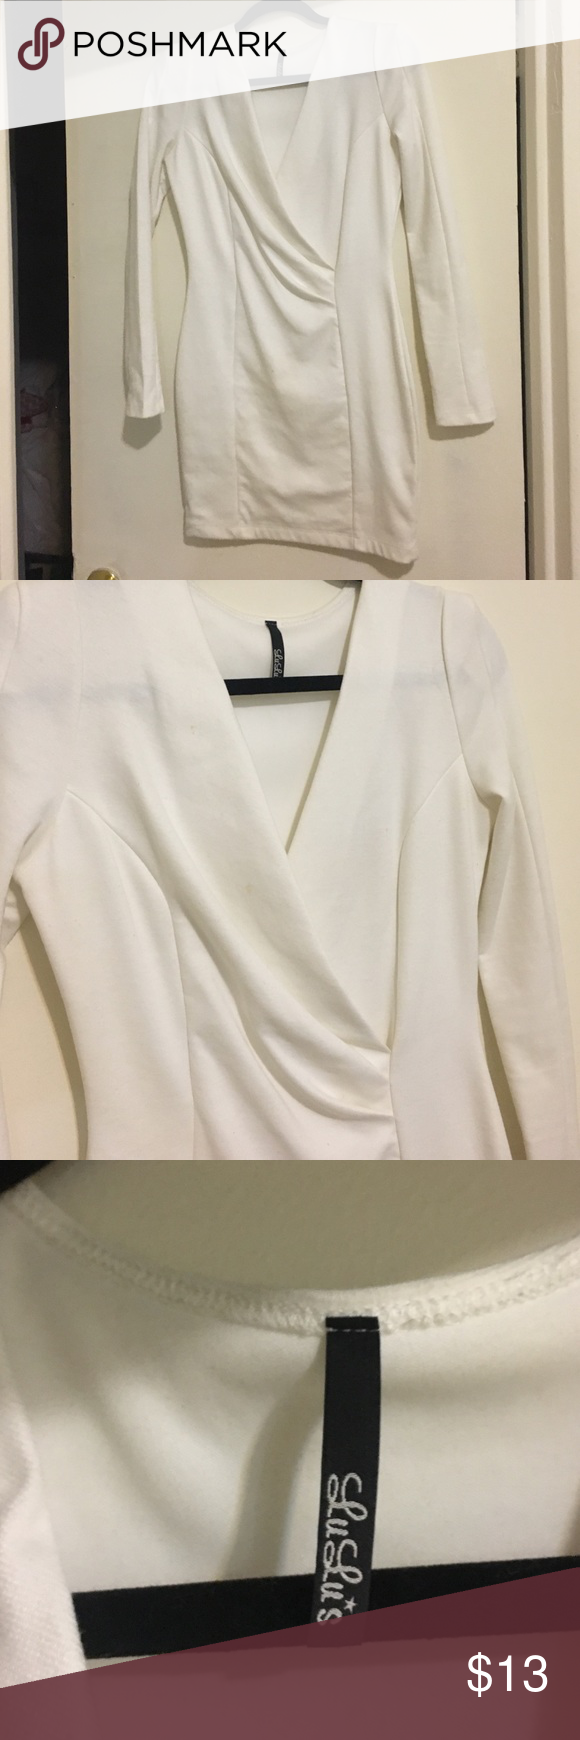 White long sleeved dress Super cute white long sleeve dress. Minor imperfections than can be removed with a wash. Lulu's Dresses Long Sleeve